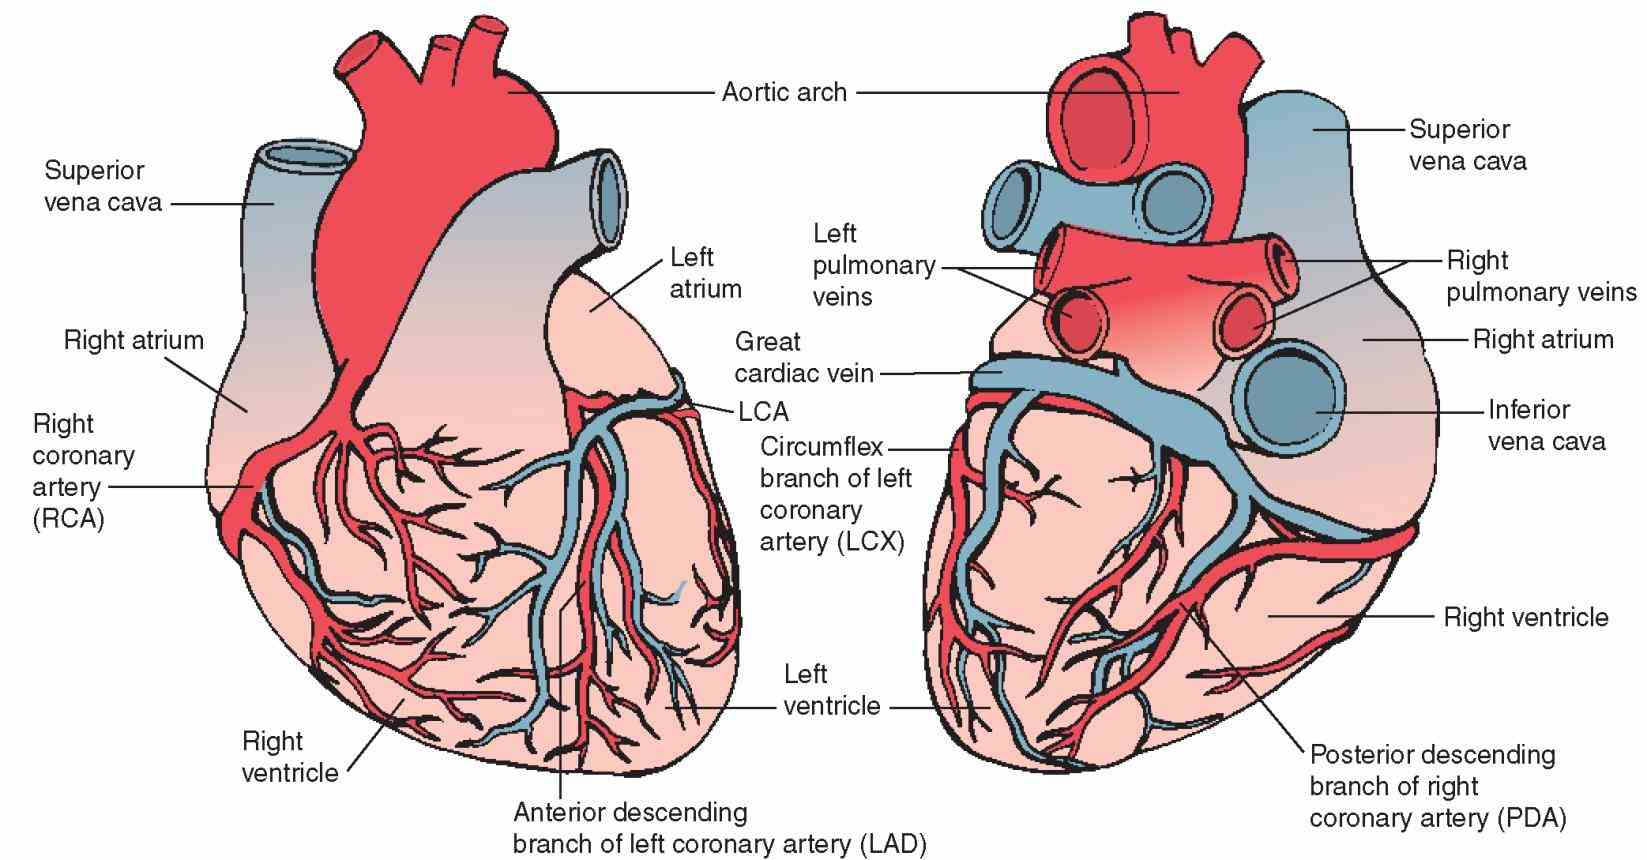 the anatomy of arteries atherosclerosis in heart brain or neck can lead to this Arteries Of Heart With Diagram